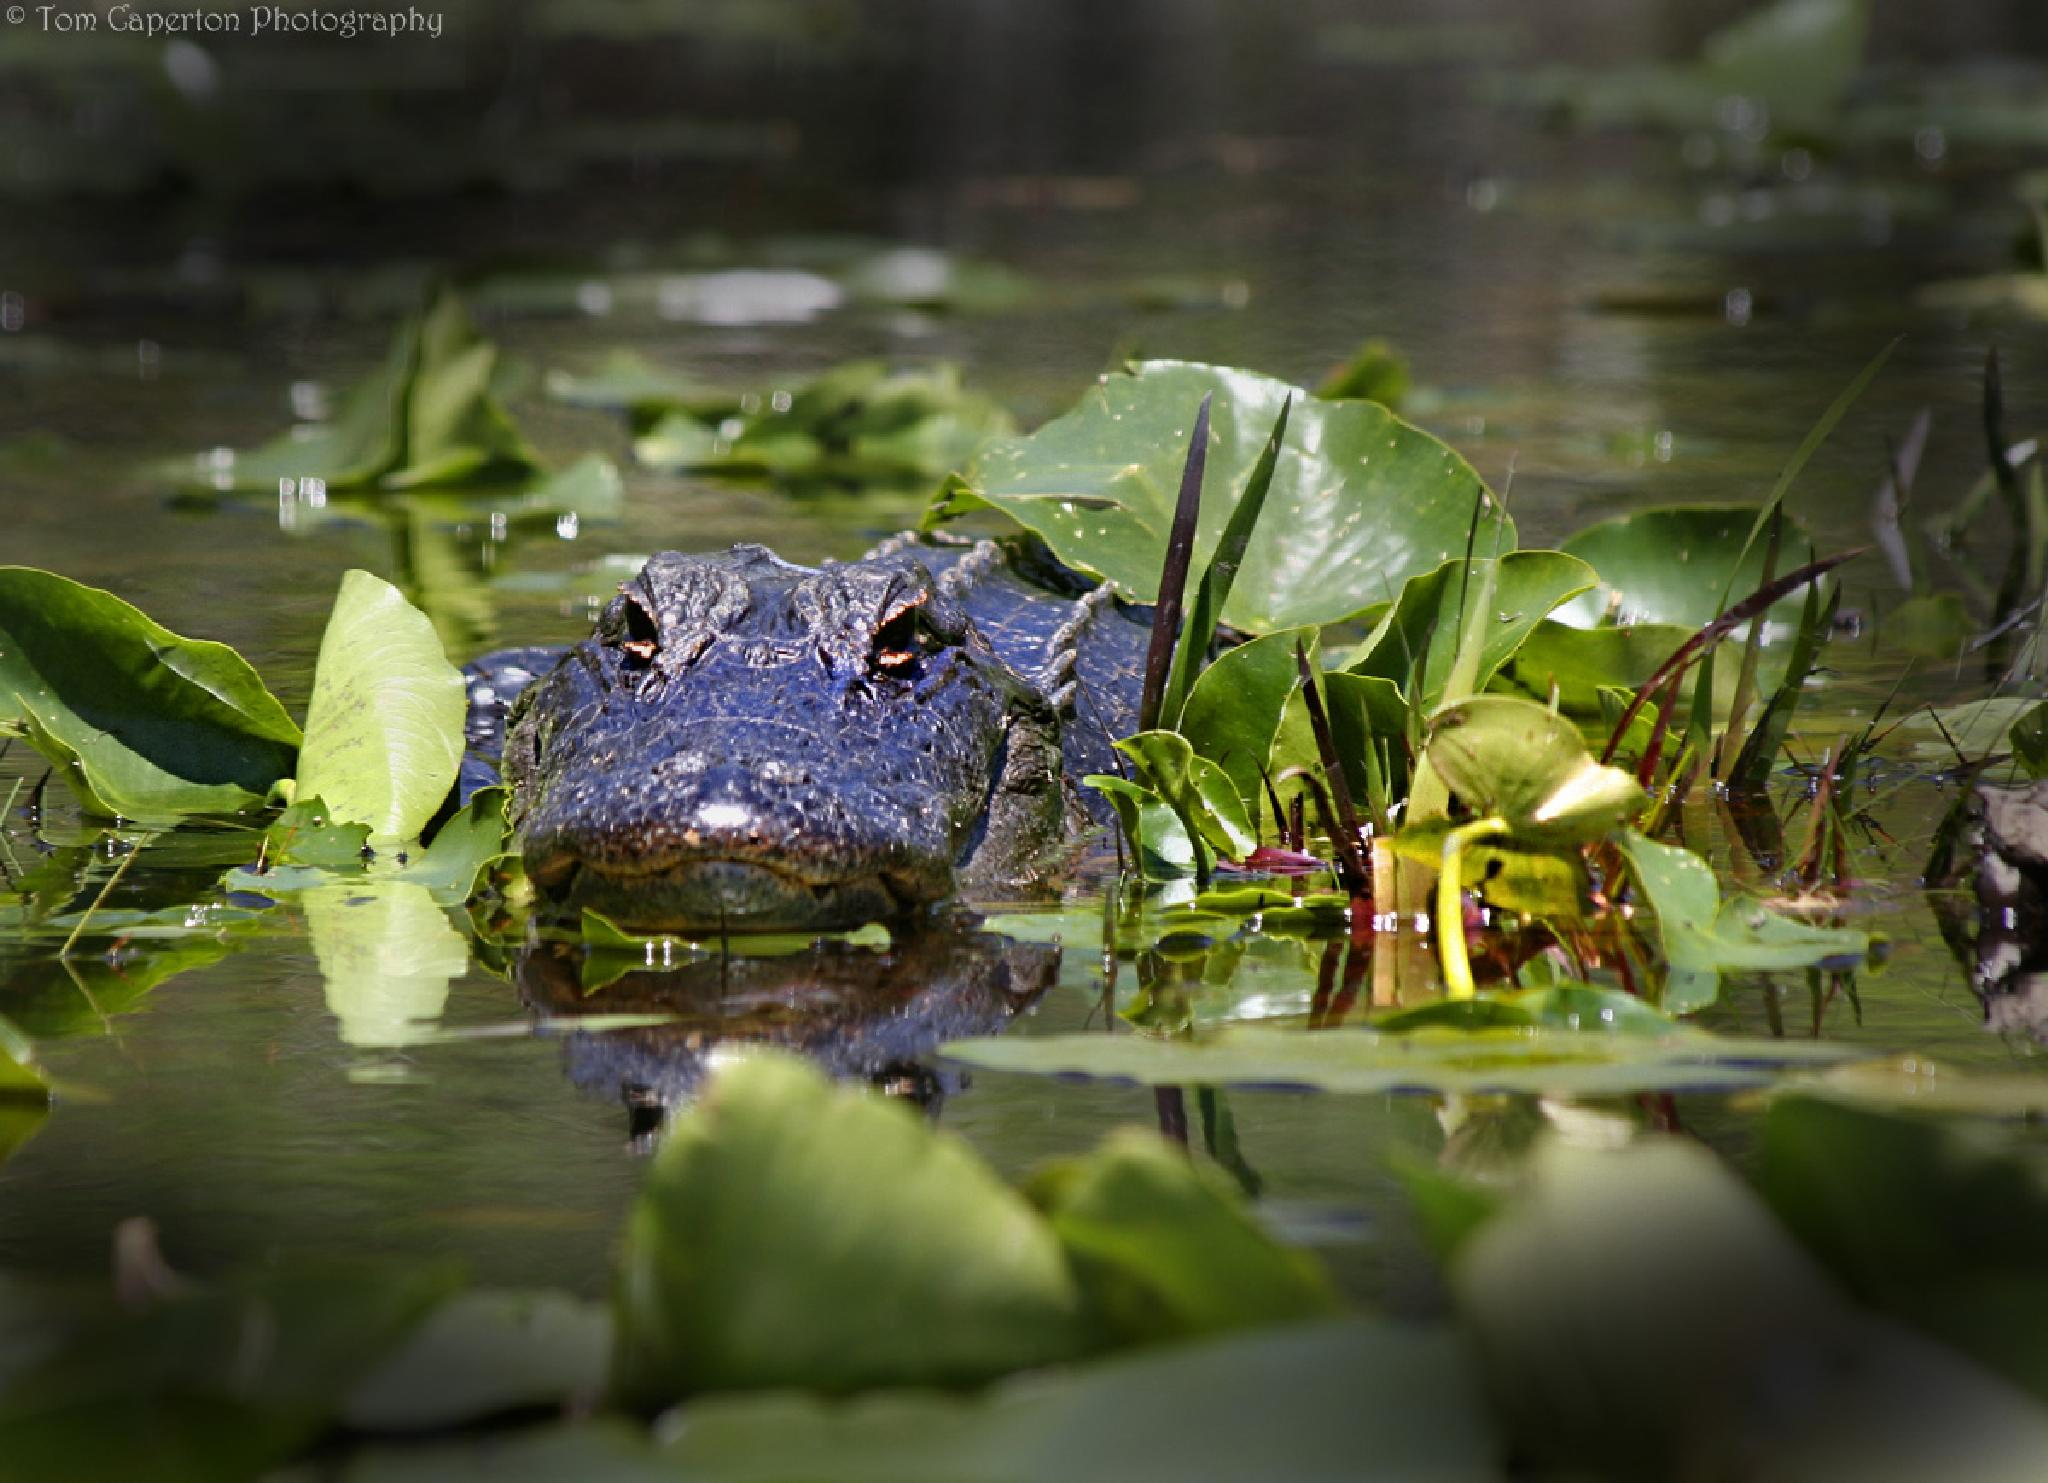 I'm watching you by Tom Caperton